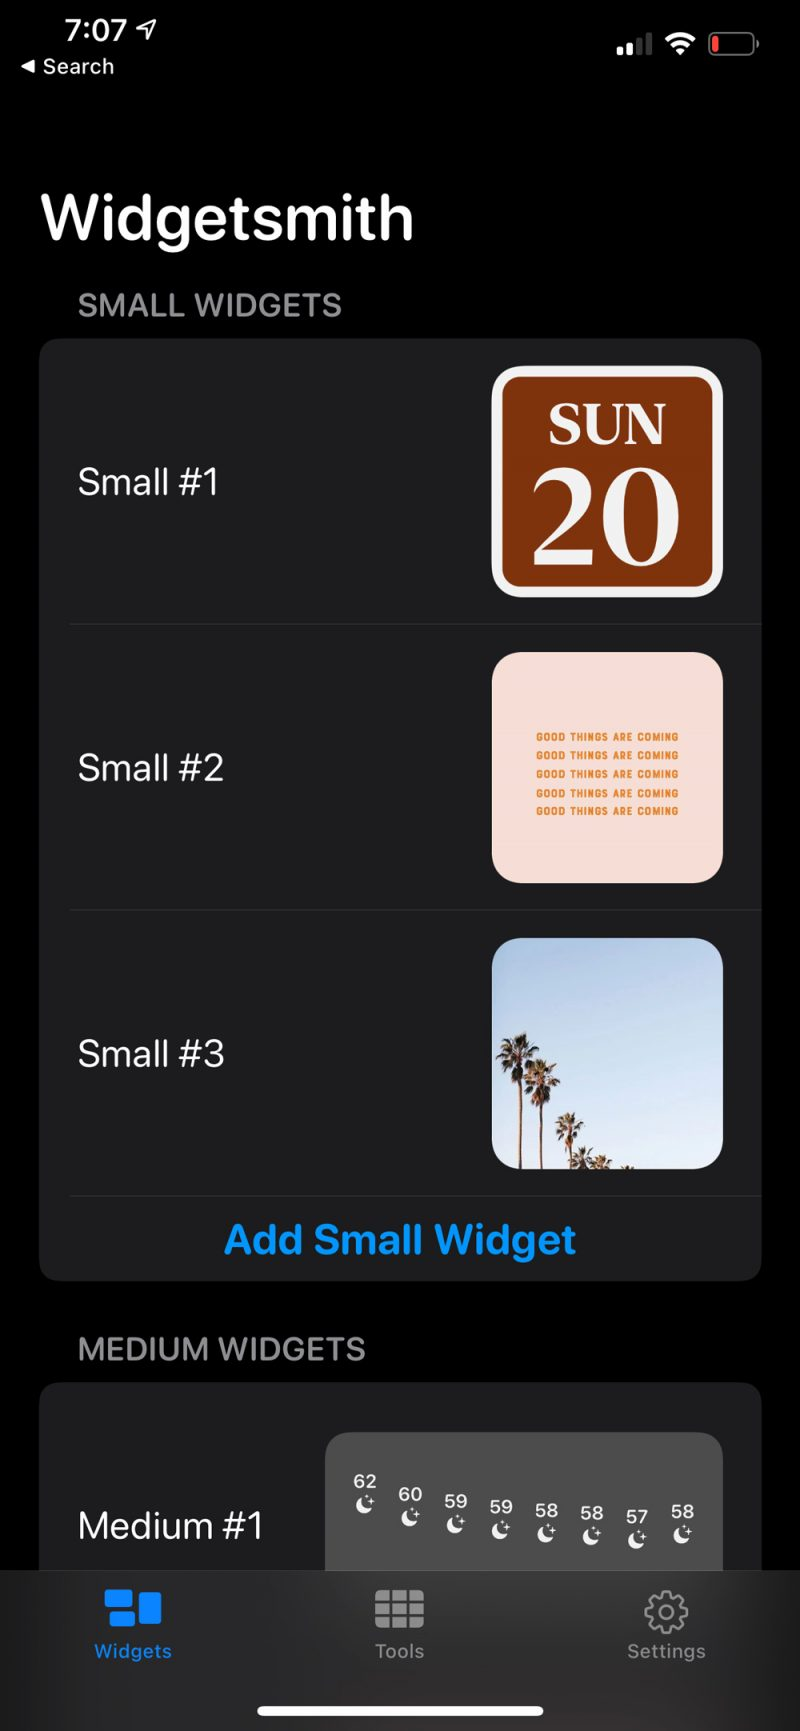 How to Use Widgetsmith | How to Customize Widgets on iPhone by popular D.C. lifestyle blogger, Alicia Tenise: image of a Widgetsmith screen.